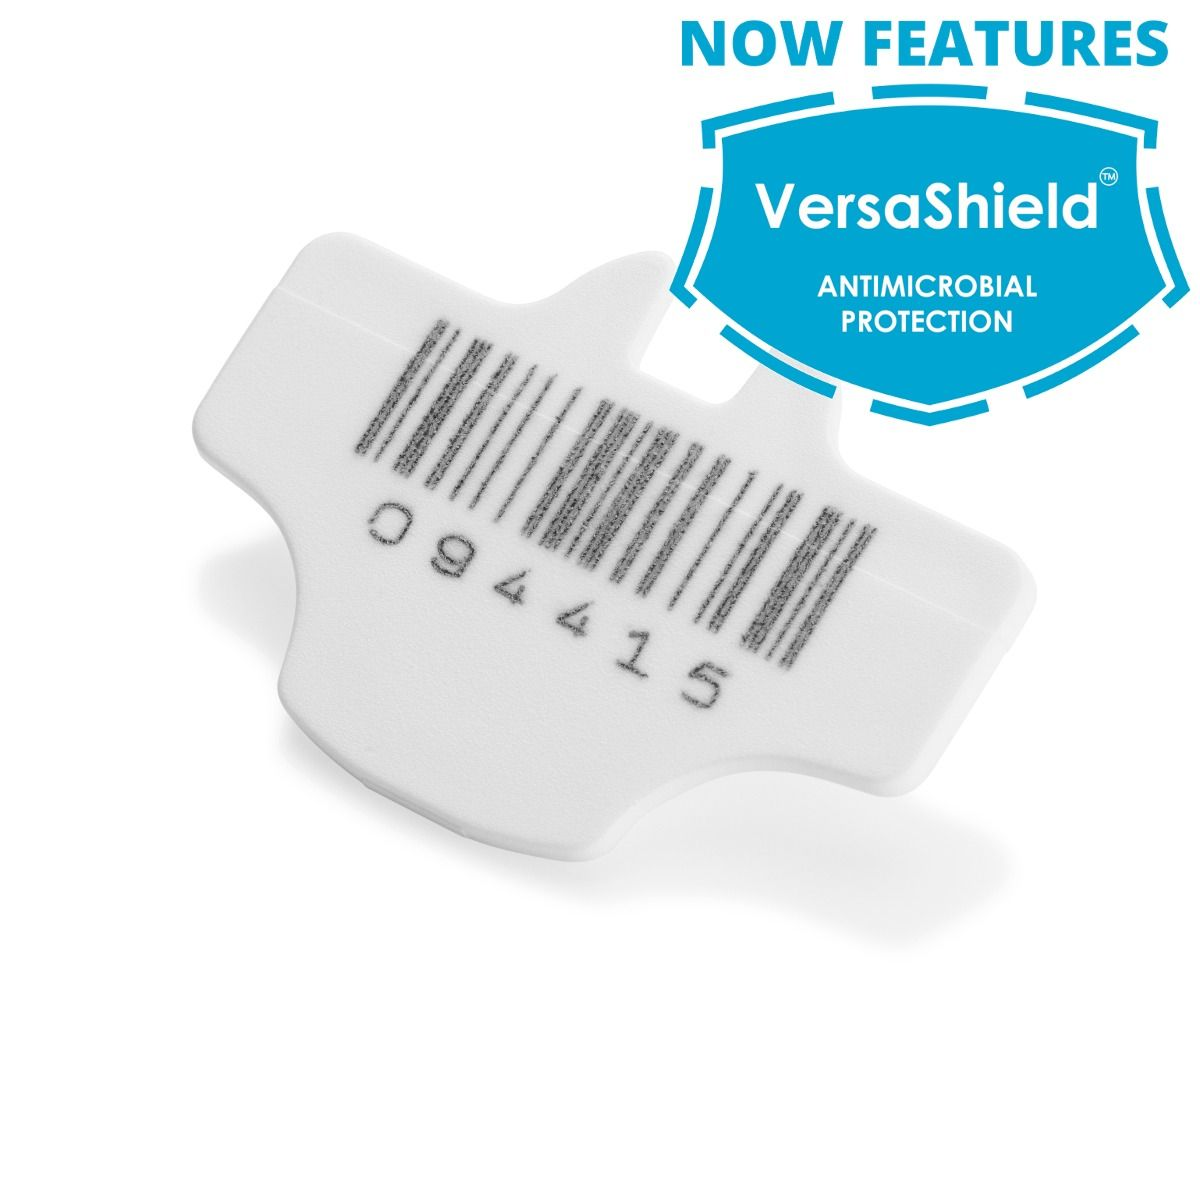 Barcoded T2 Tamper Evident Security Seals